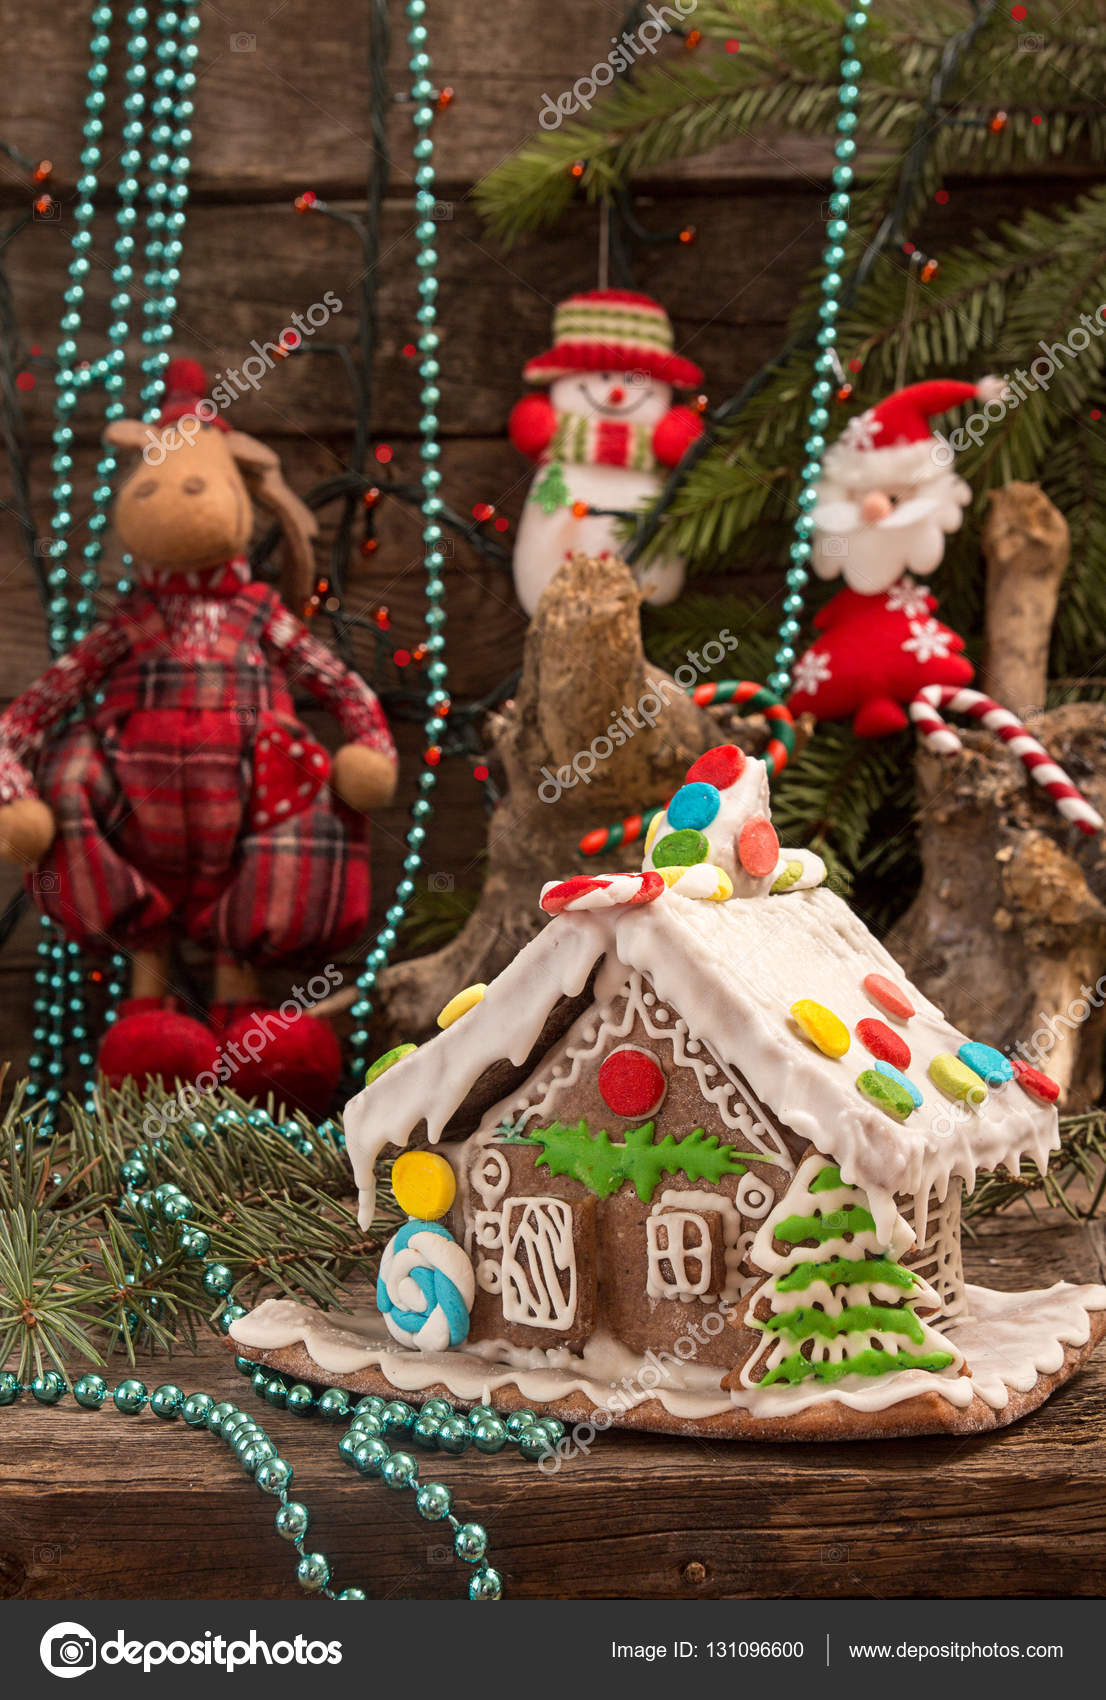 Christmas gingerbread house and holiday decorations on old